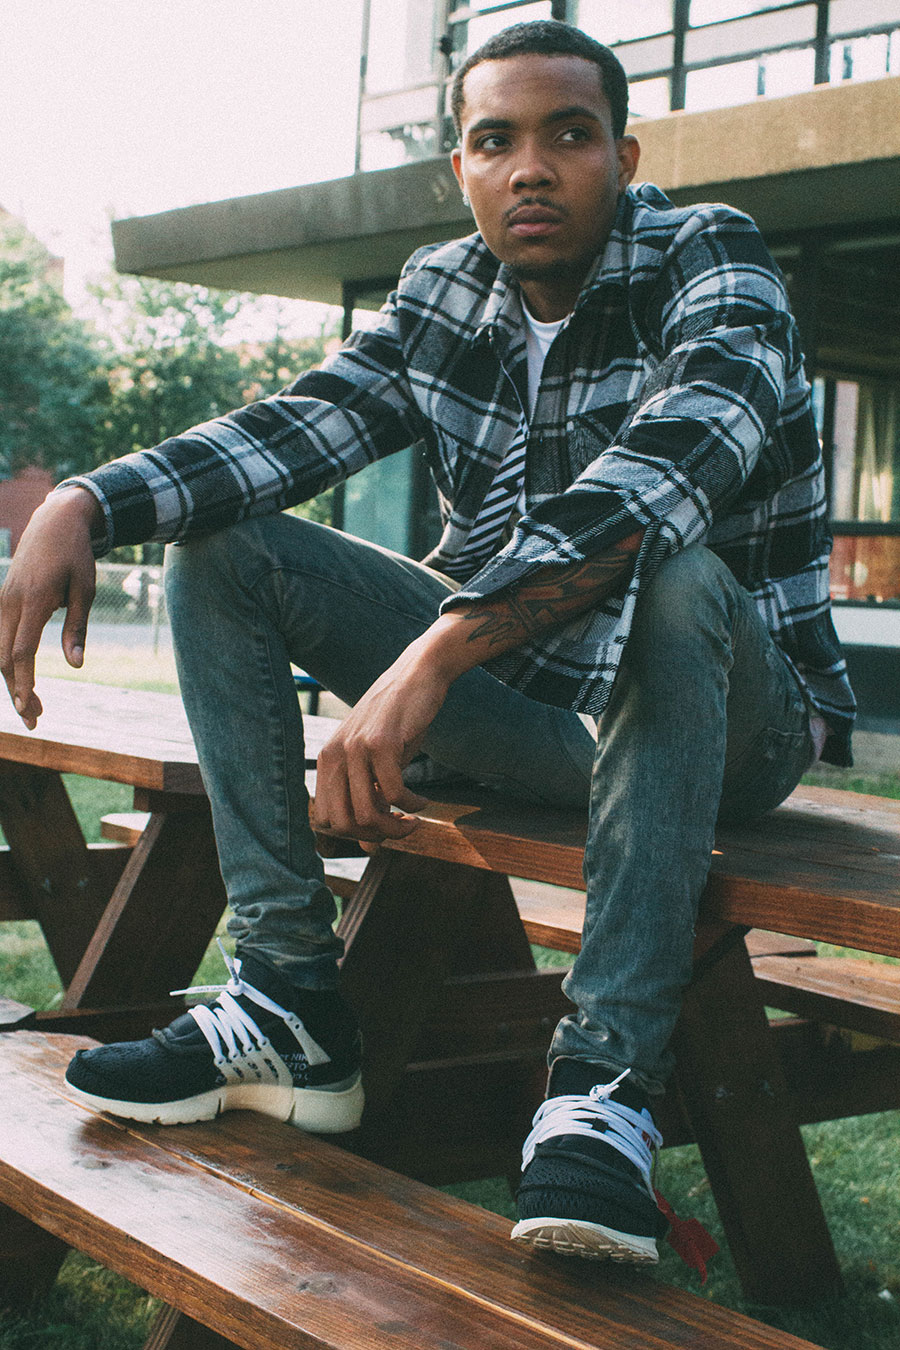 G Herbo in front of Overton Elementary